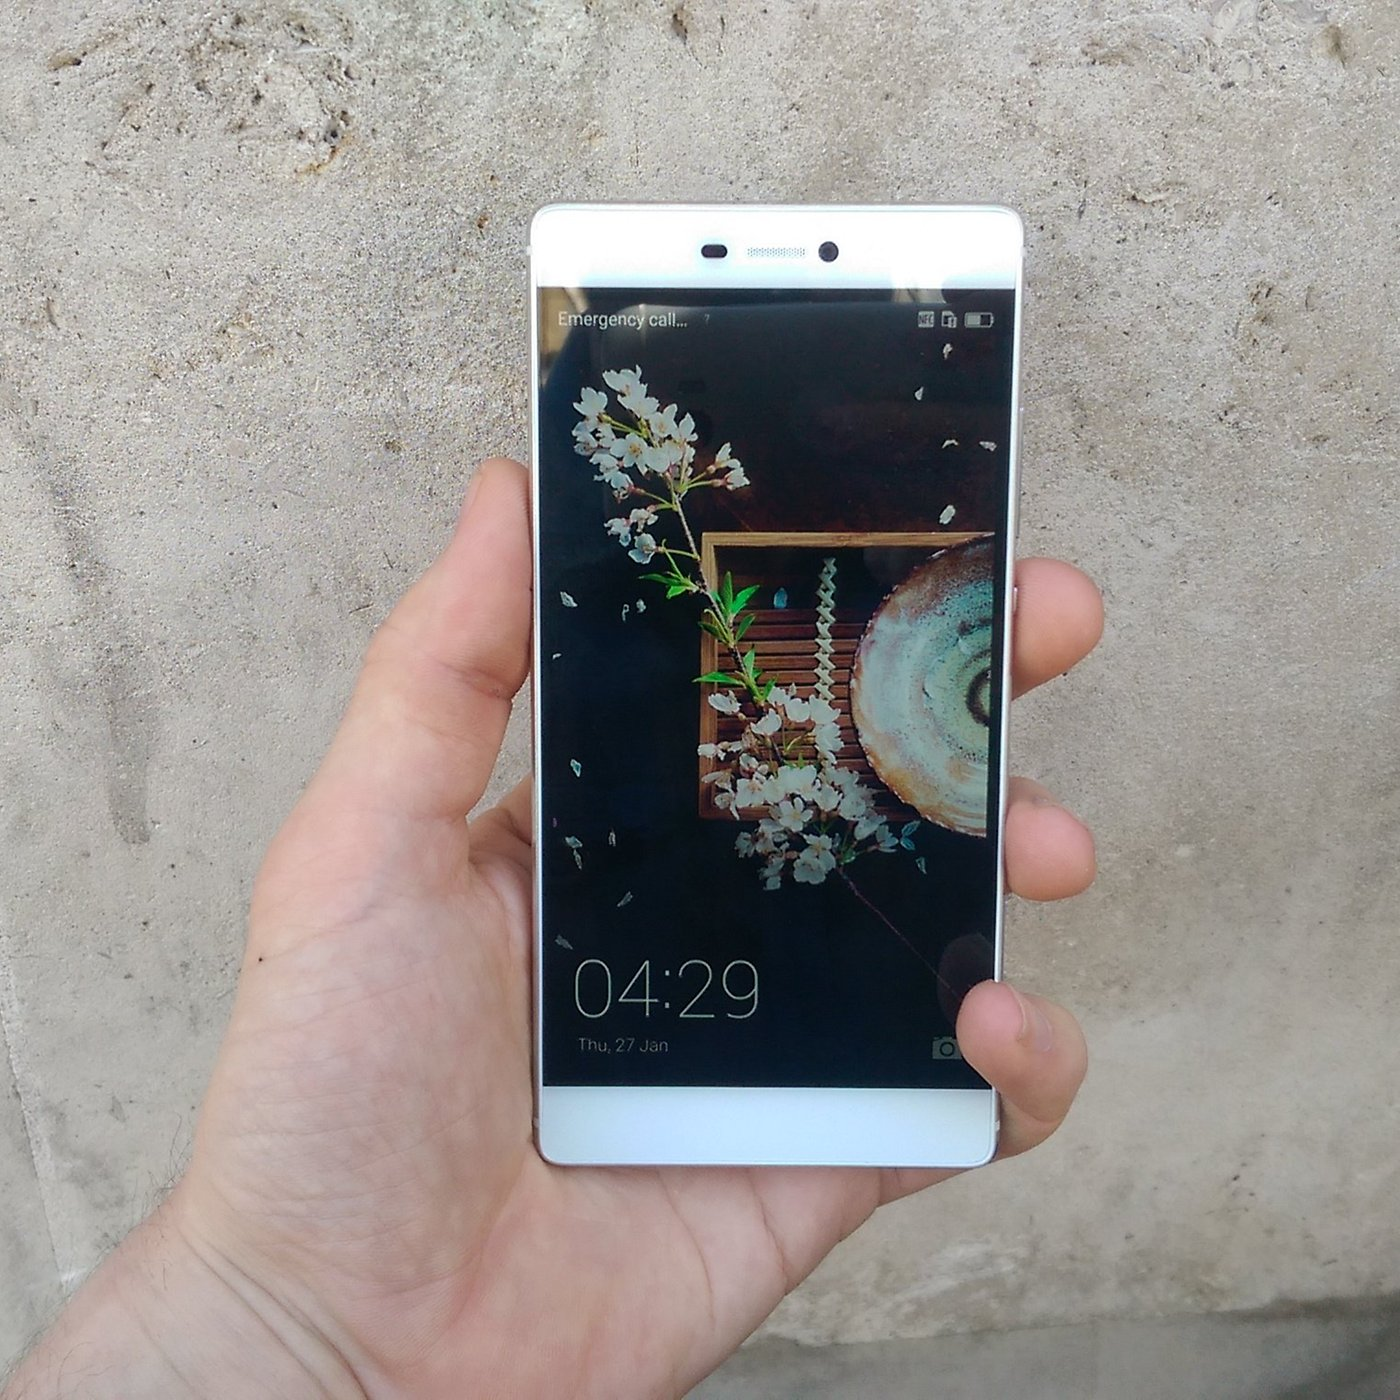 Huawei P8 tips and tricks: new ways to boost your P8 | AndroidPIT